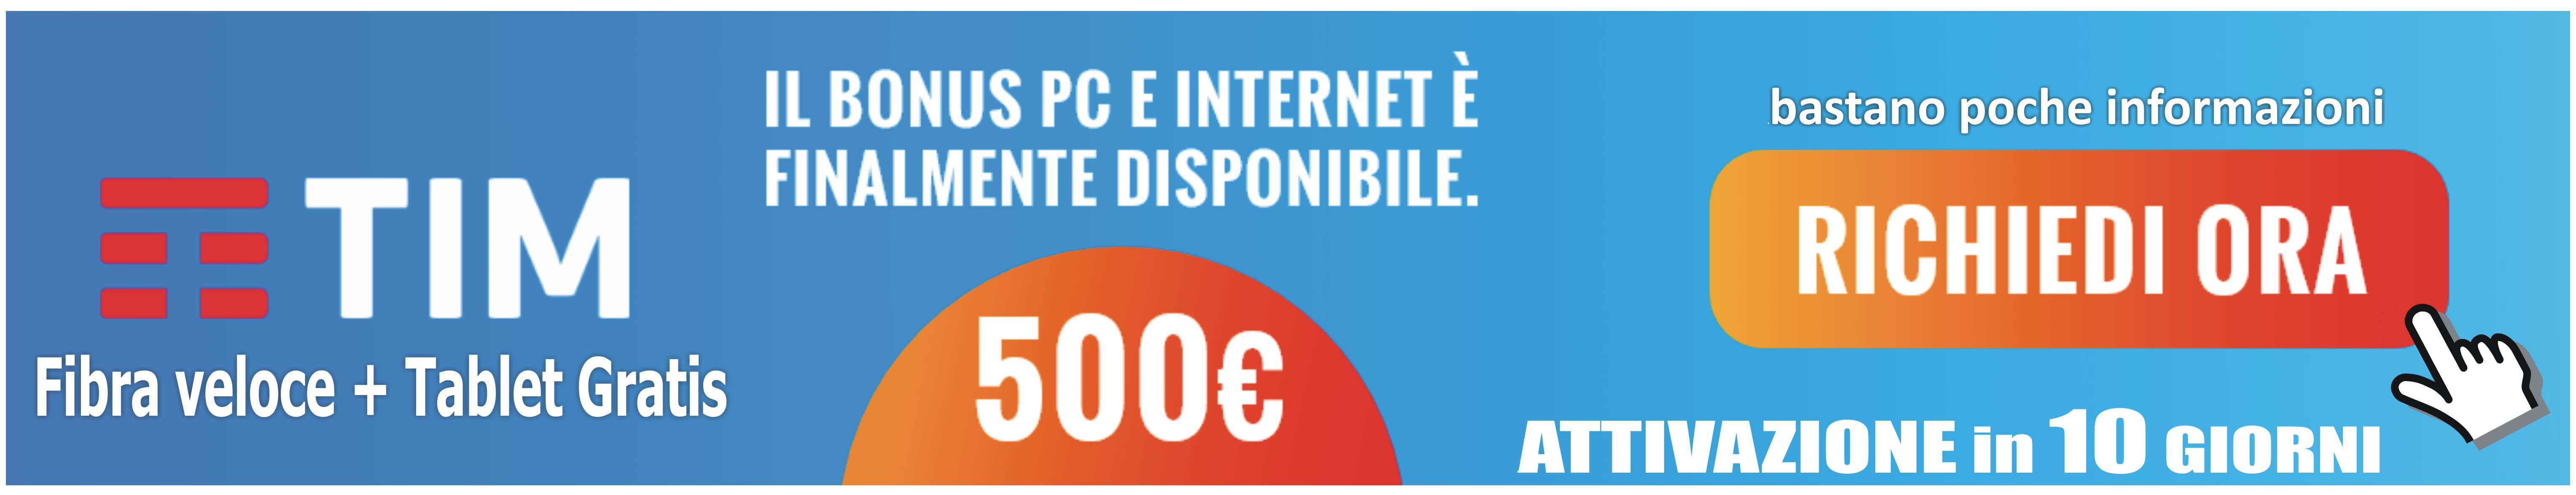 Tim bonus pc e internet